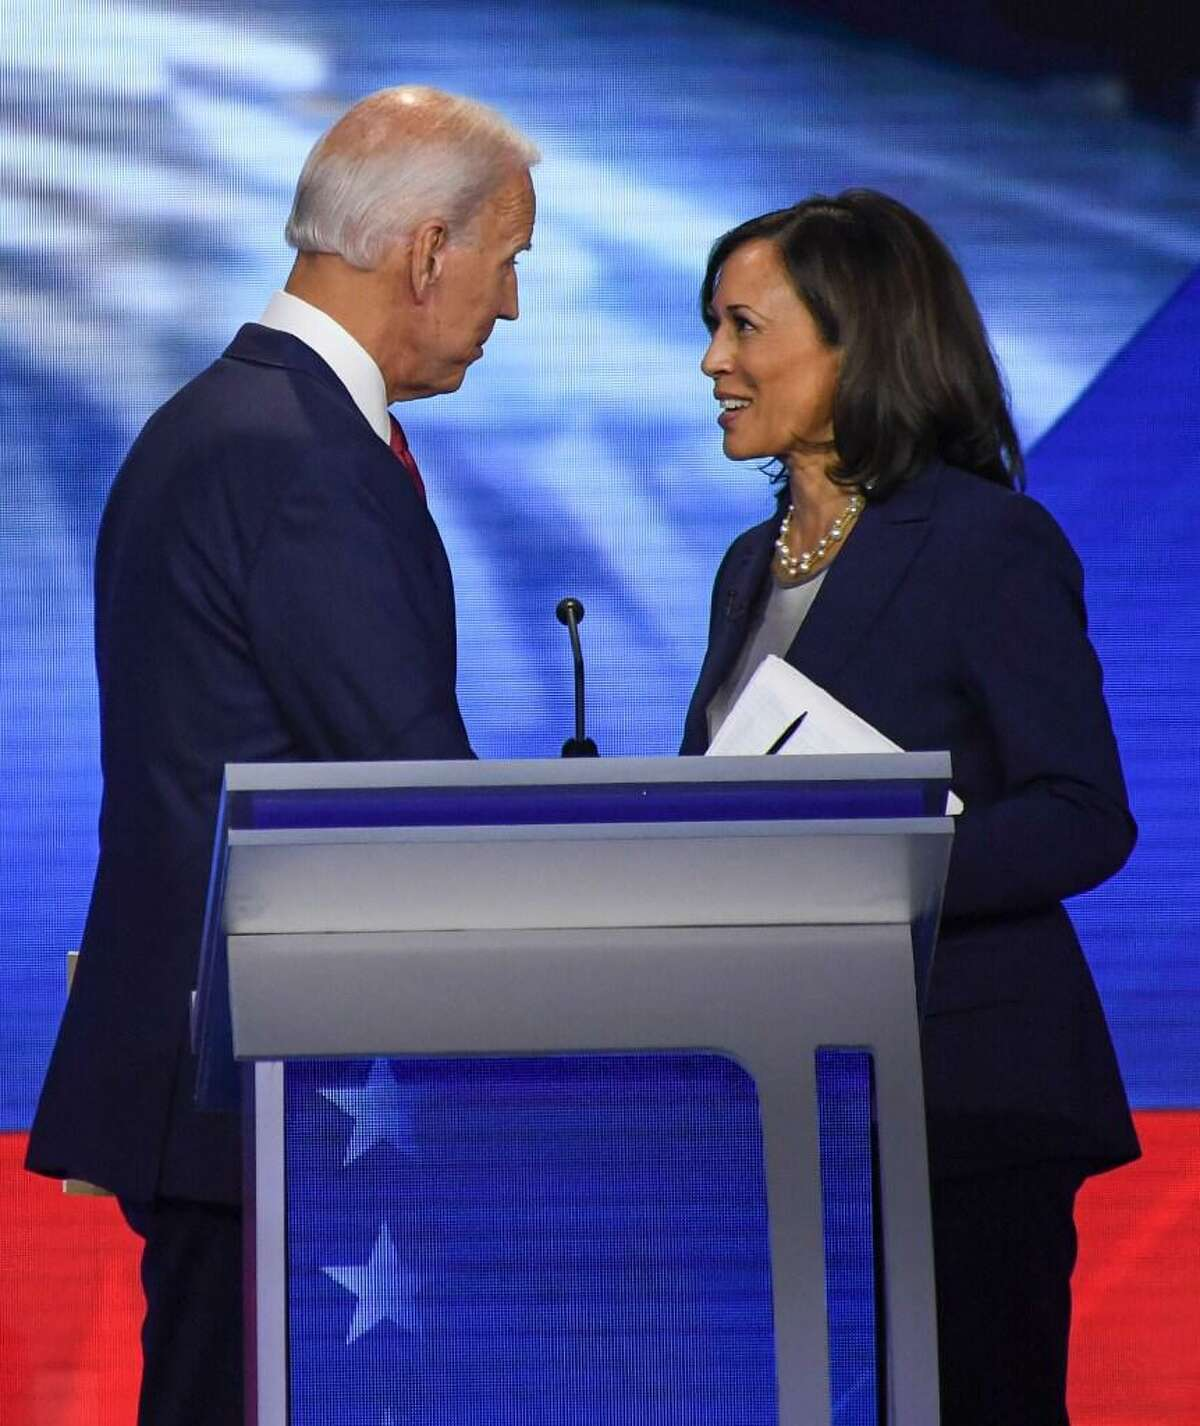 Joe Biden and Kamala Harris, the nation's incoming leaders, have the opportunity to restore trust in government.